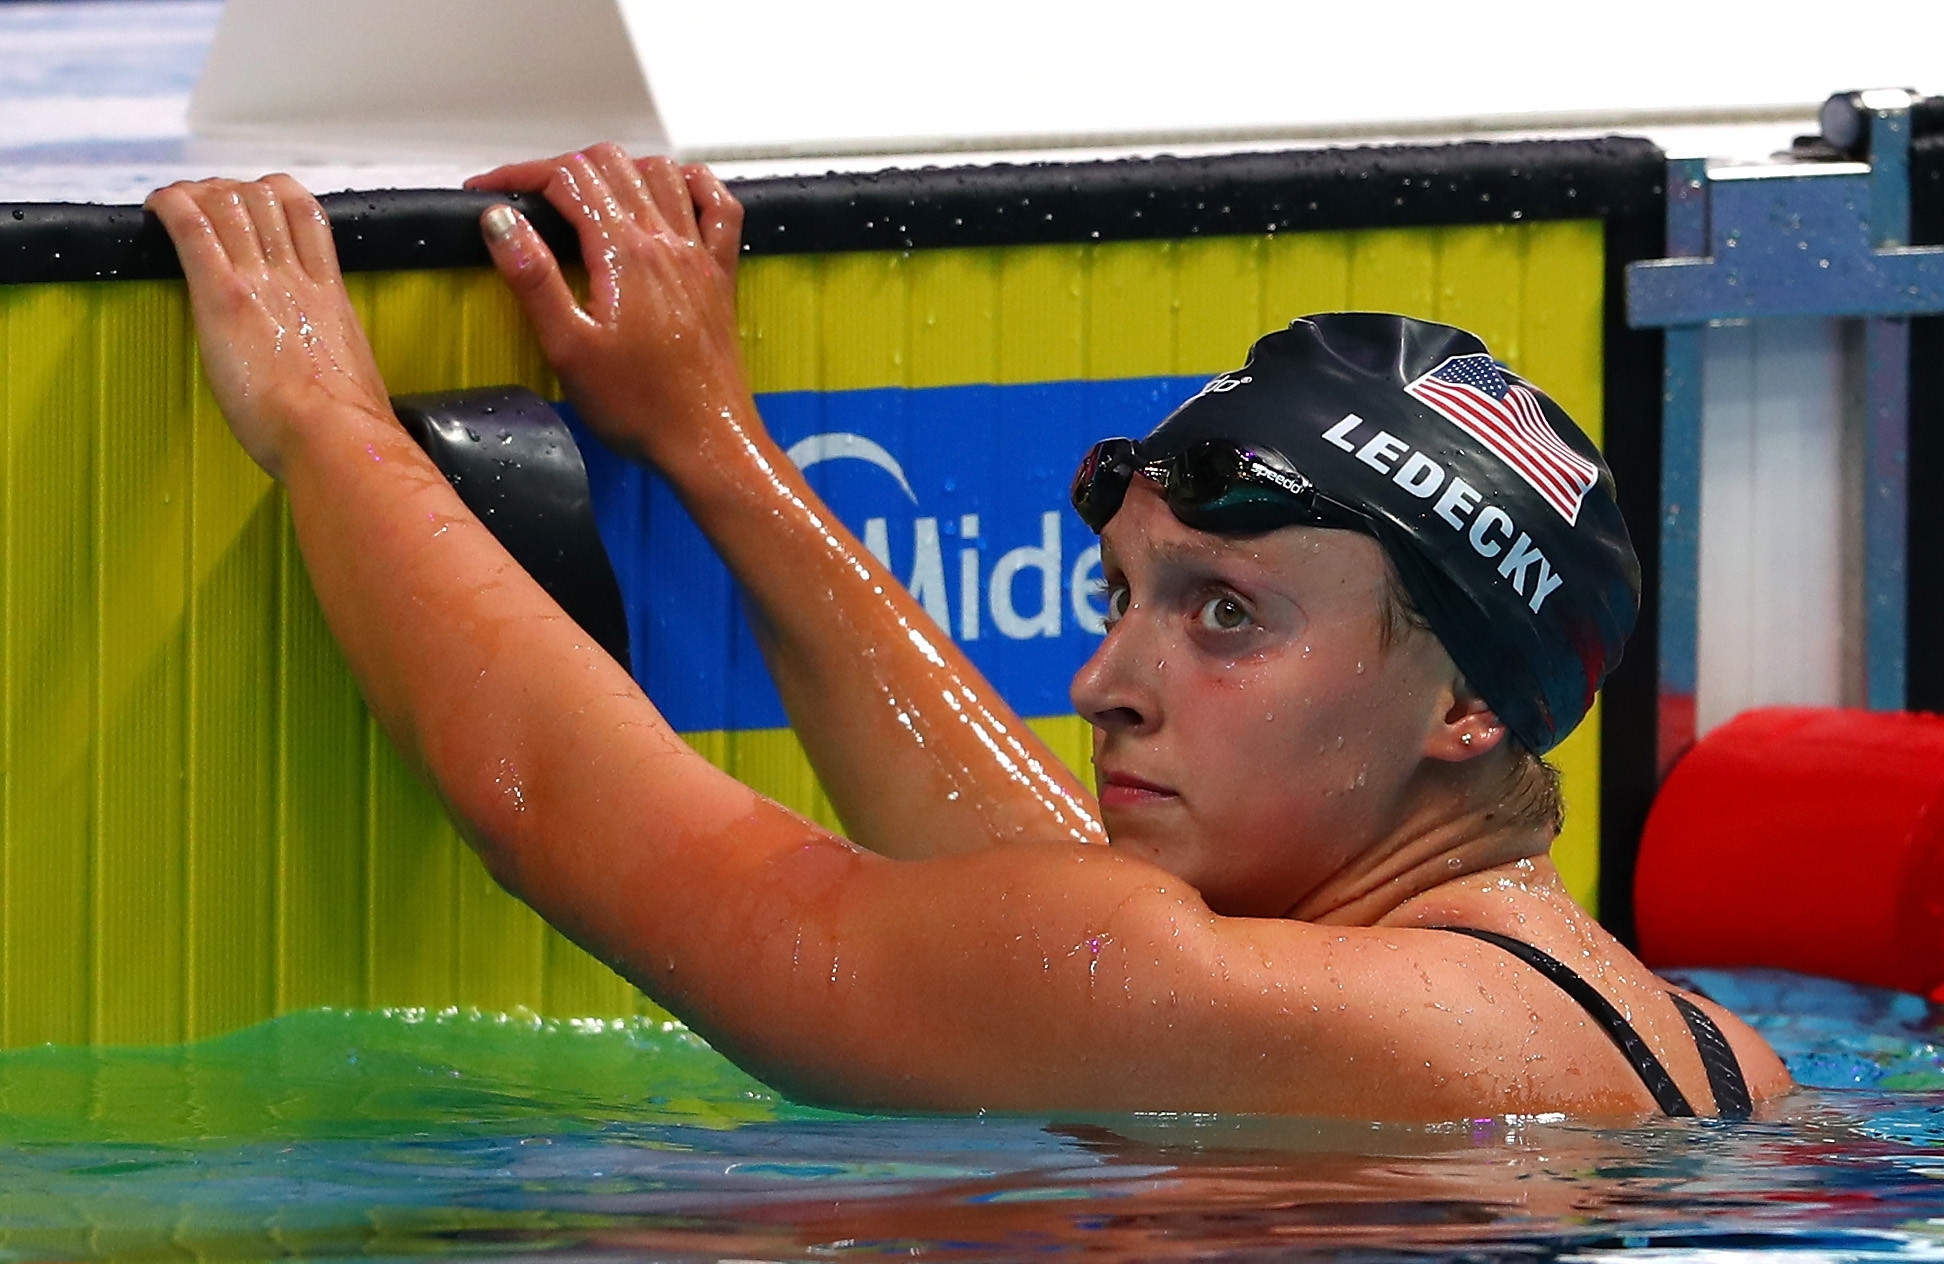 Swimmers such as Katie Ledecky are expected to compete at the Tokyo 2020 Olympics US Trials ©Getty Images